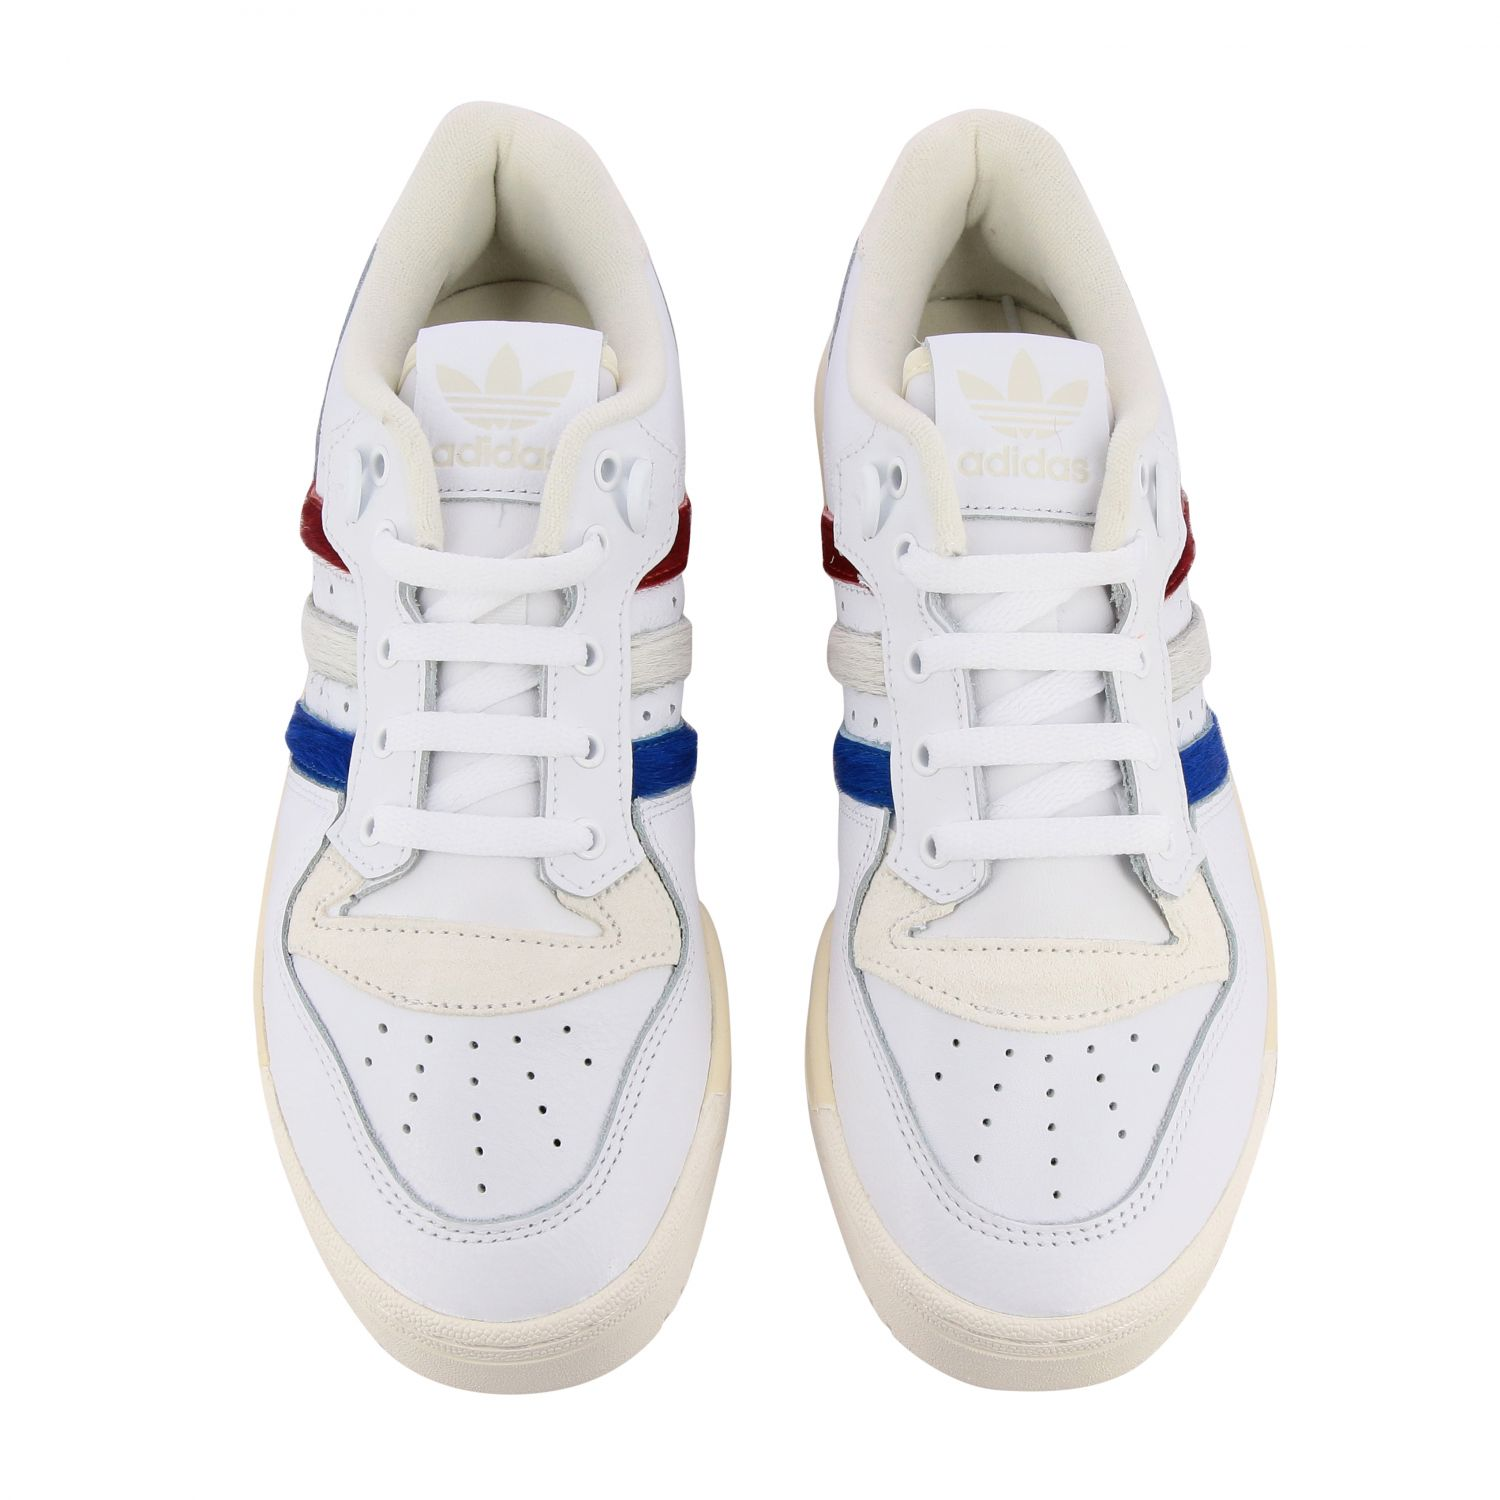 Trainers Adidas Originals: Shoes men Adidas Originals white 3